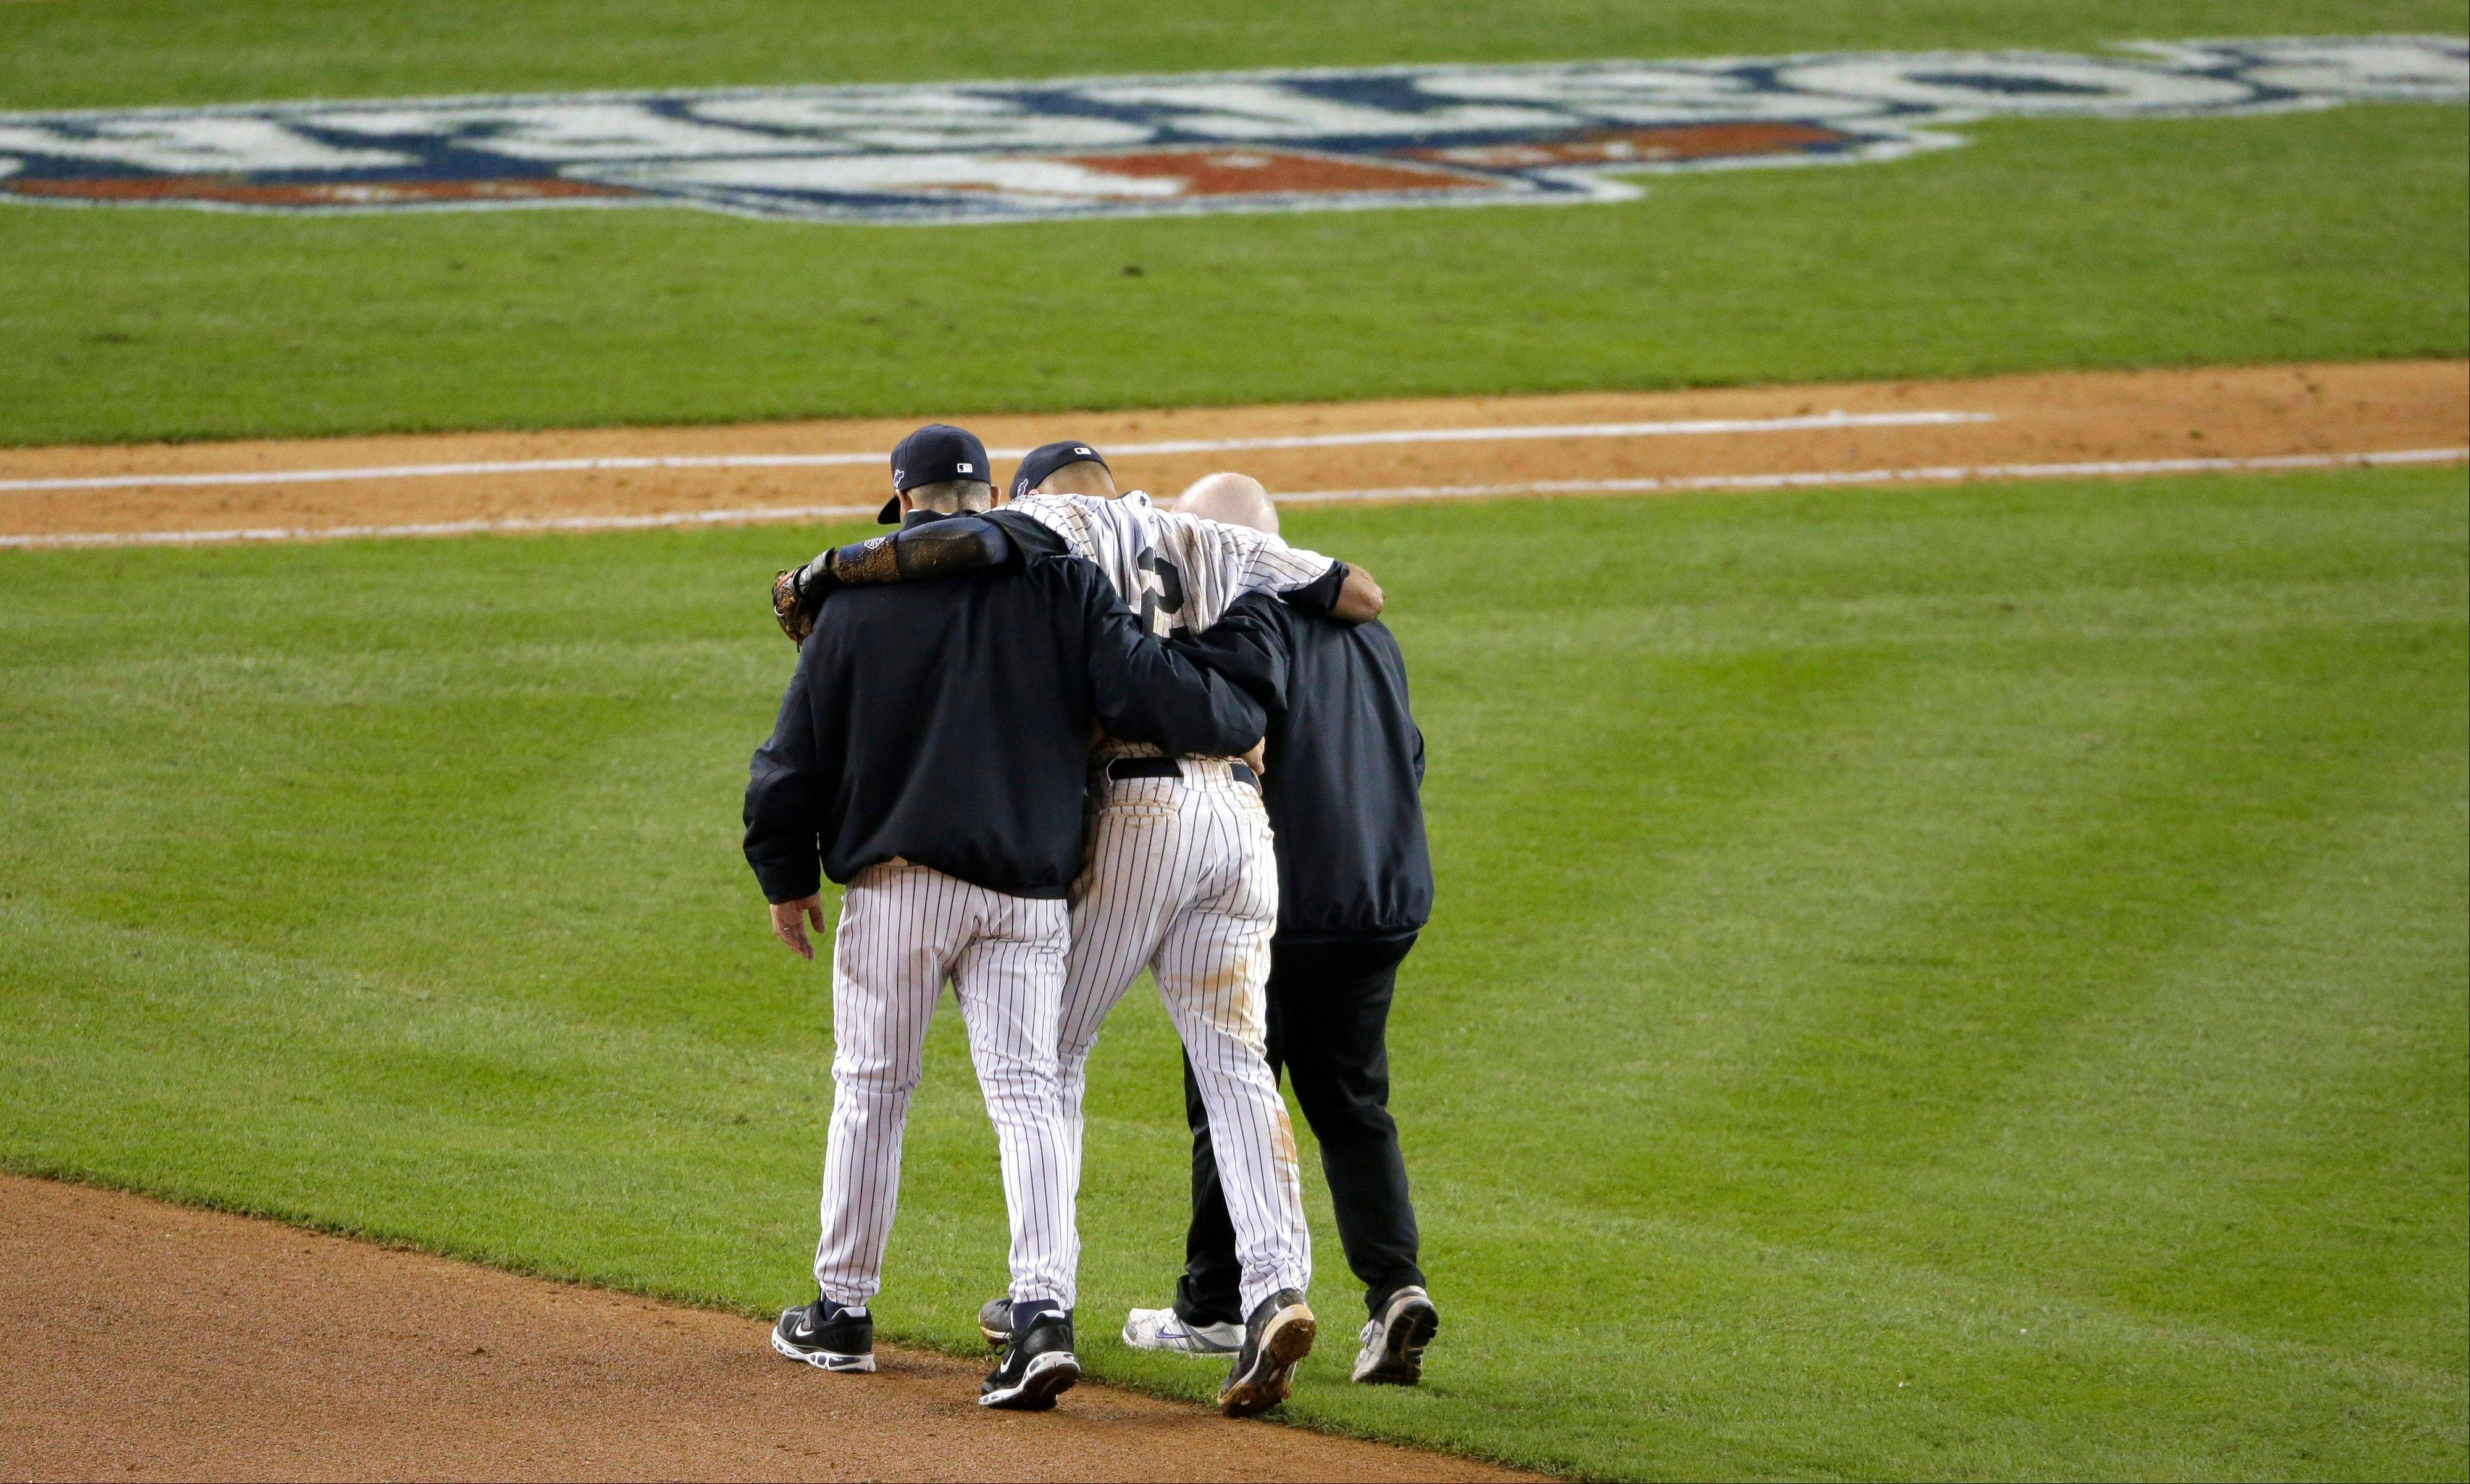 Trainer Steve Donohue, right, and New York Yankees manager Joe Girardi, left, help Yankees' Derek Jeter off the field after he injured himself during Game 1 of the American League championship series against the Detroit Tigers Sunday, Oct. 14, 2012, in New York.